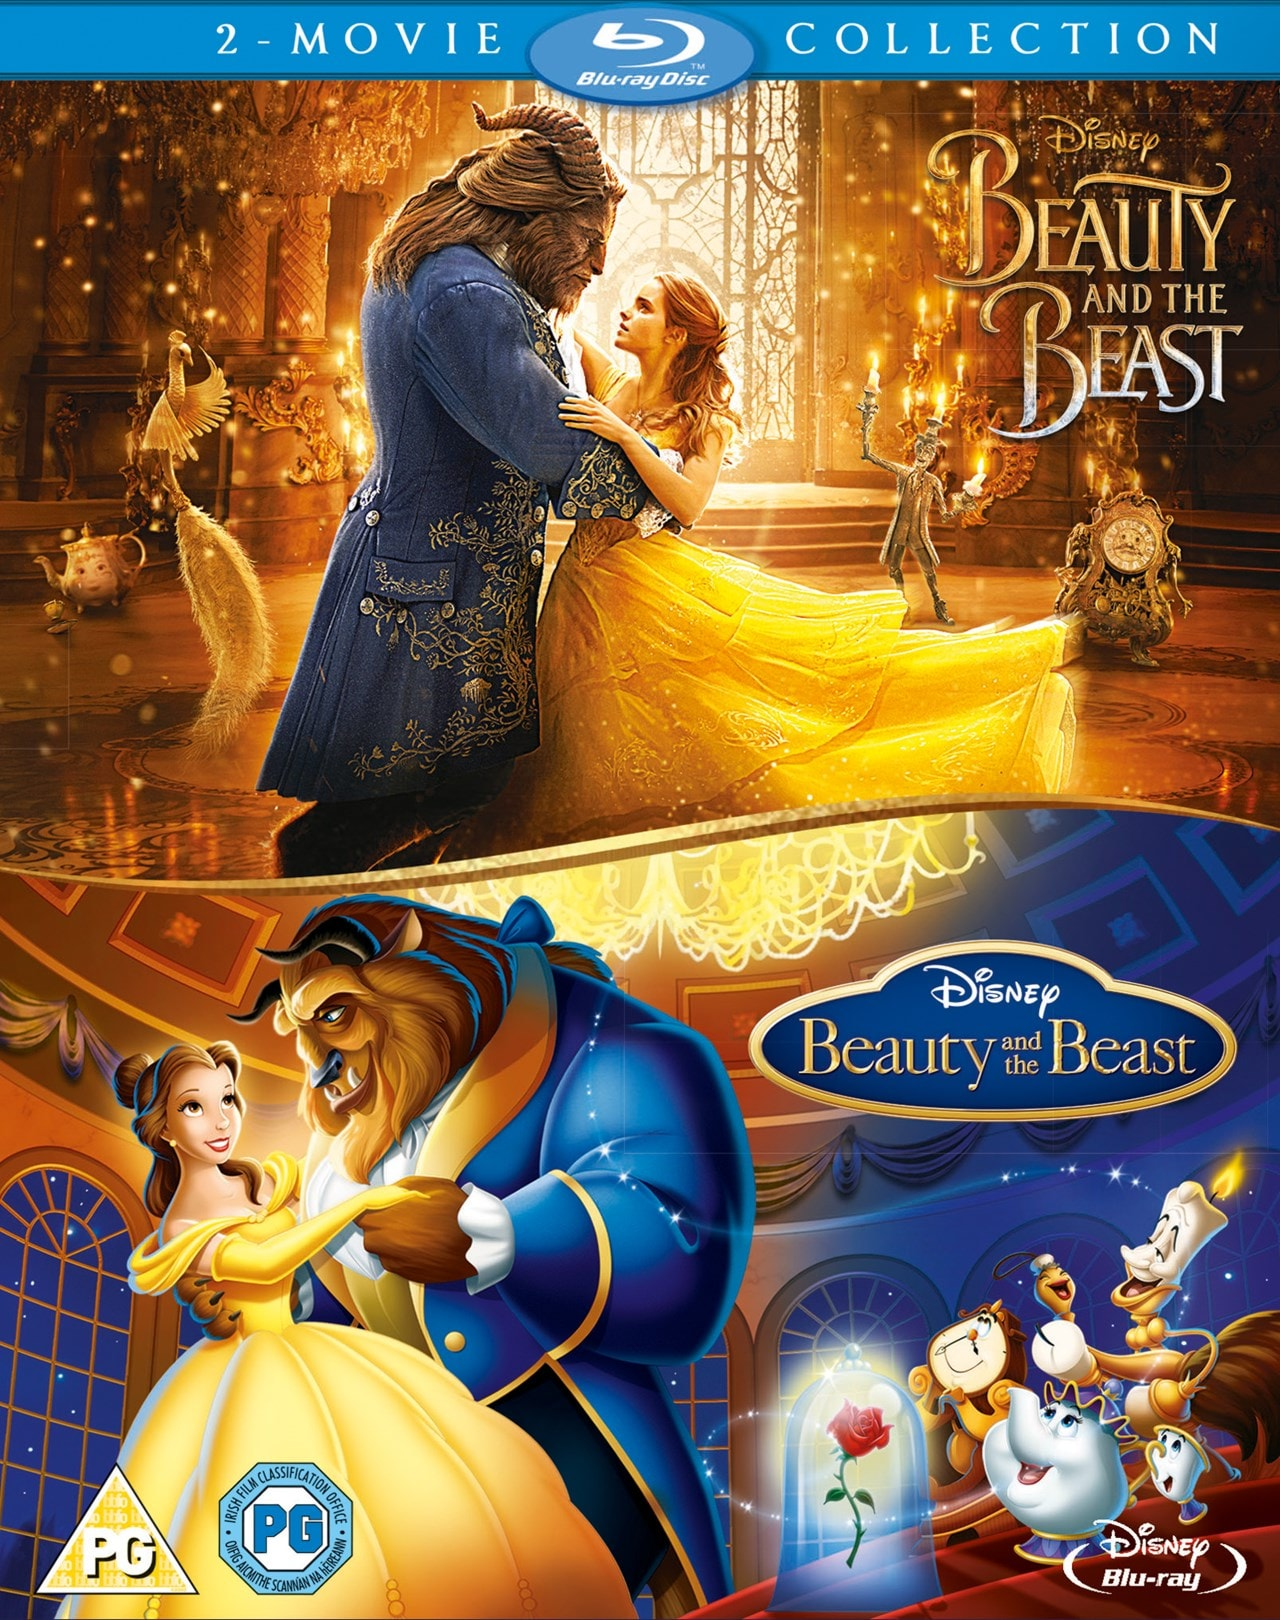 Beauty and the Beast: 2-movie Collection - 1